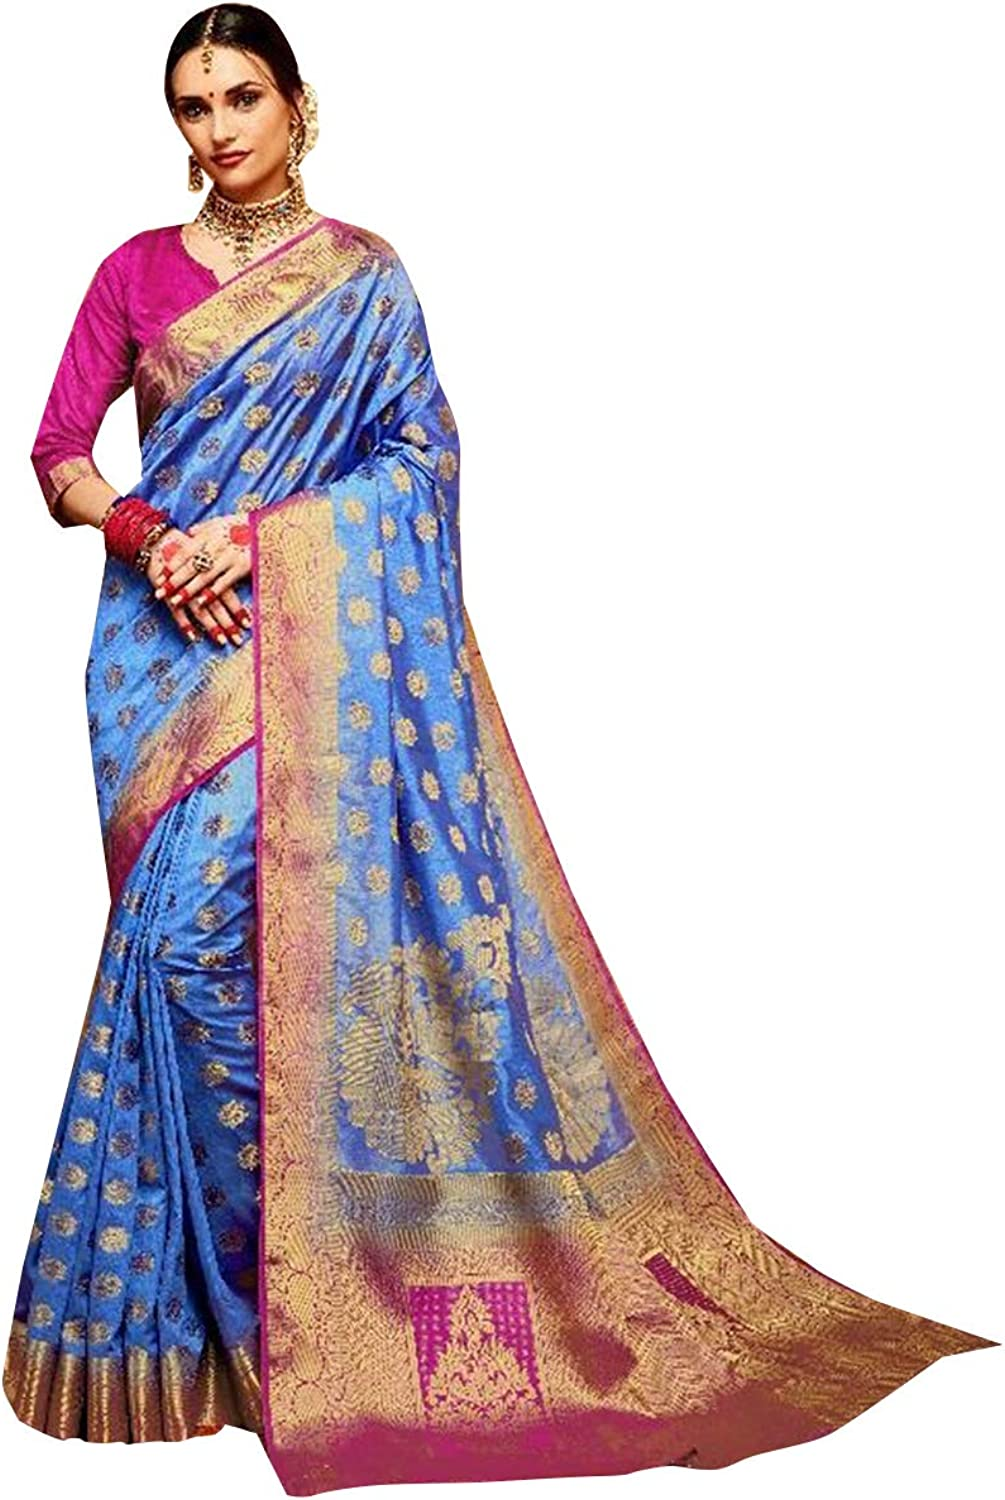 bluee Ready to wear Festive Designer Kamalkari Silk Sari with Stitched Blouse for Women Indian Ethnic Saree 7633